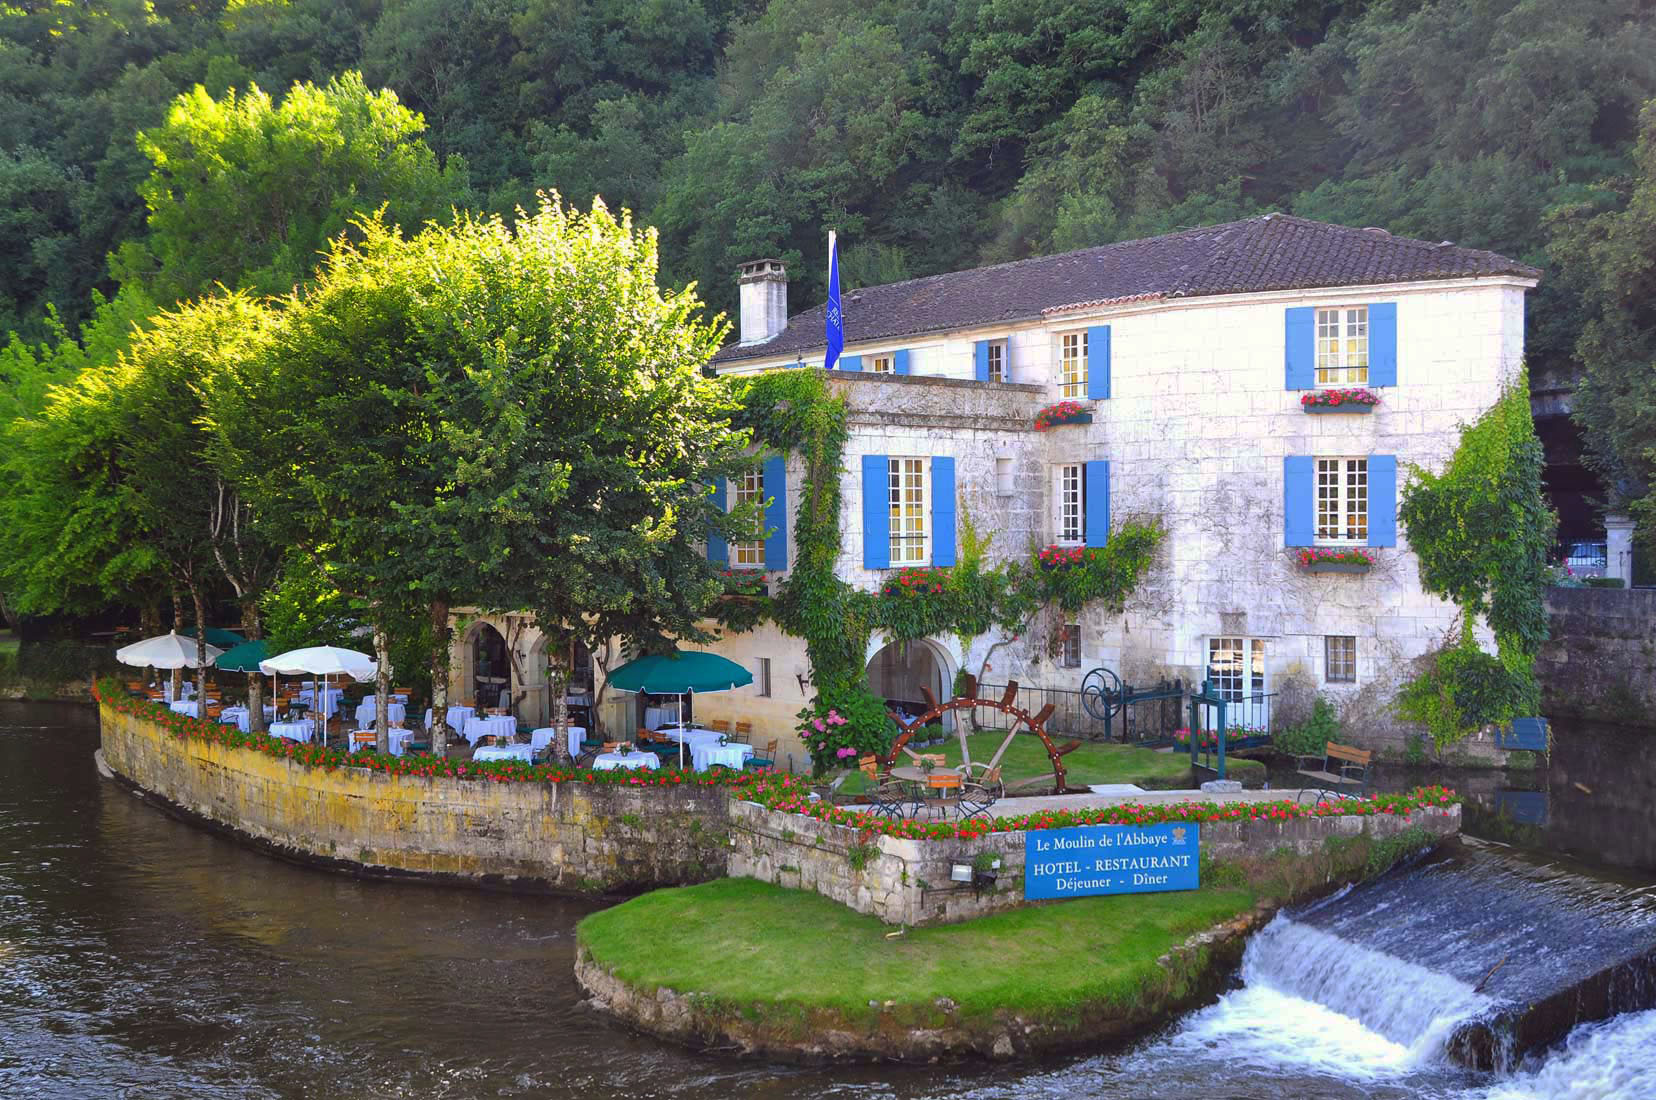 Le moulin de l 39 abbaye a charming french village hotel in for Hotel design france